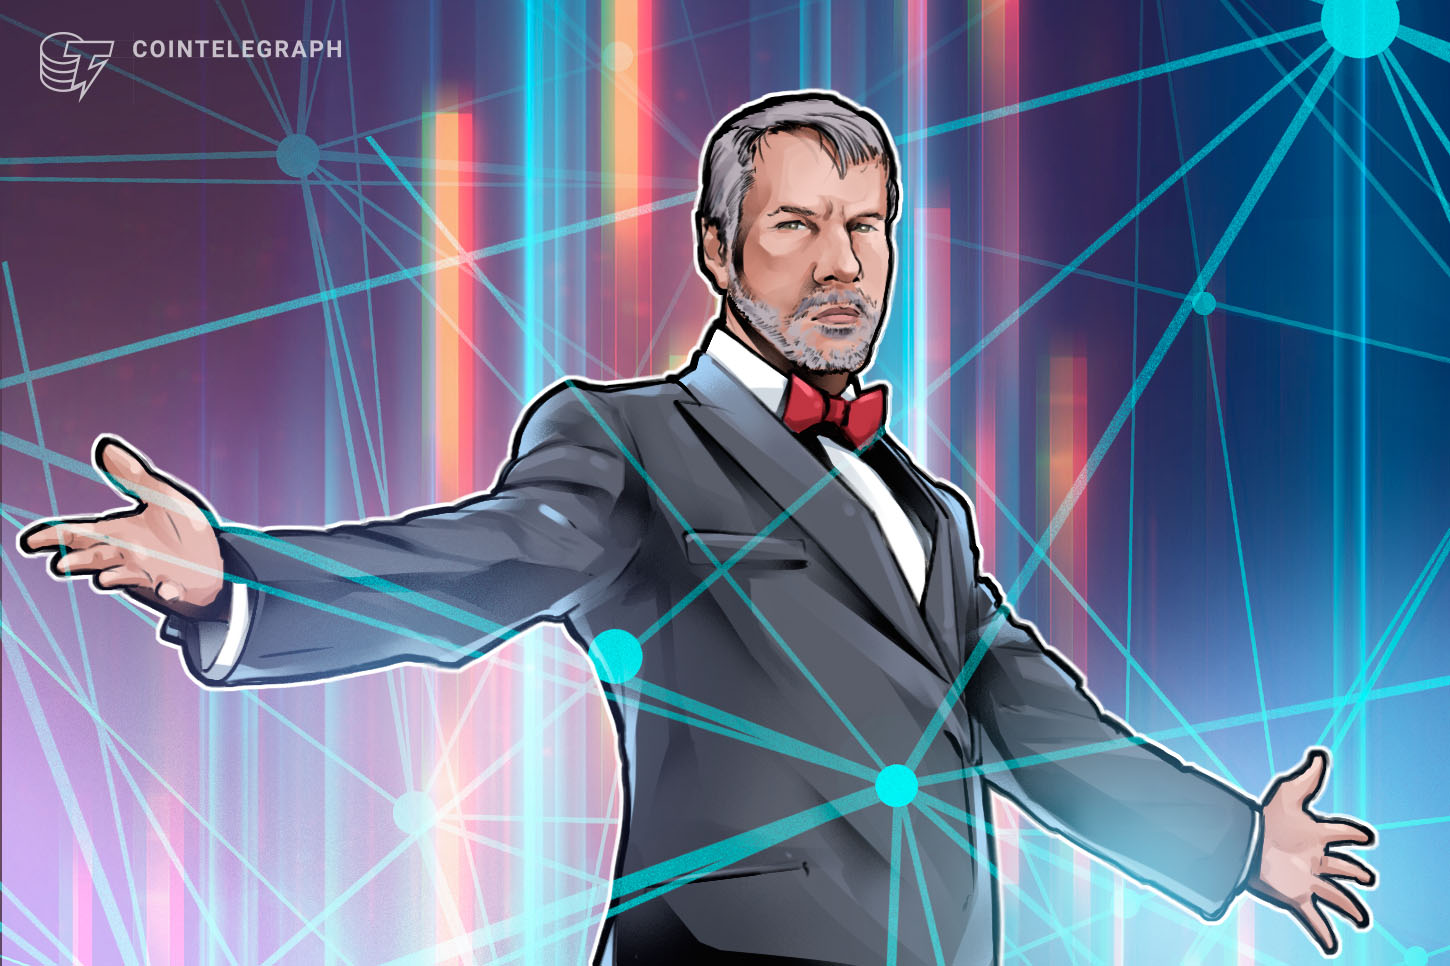 Michael Saylor says Bitcoin Mining Council required to combat 'hostile' narrative